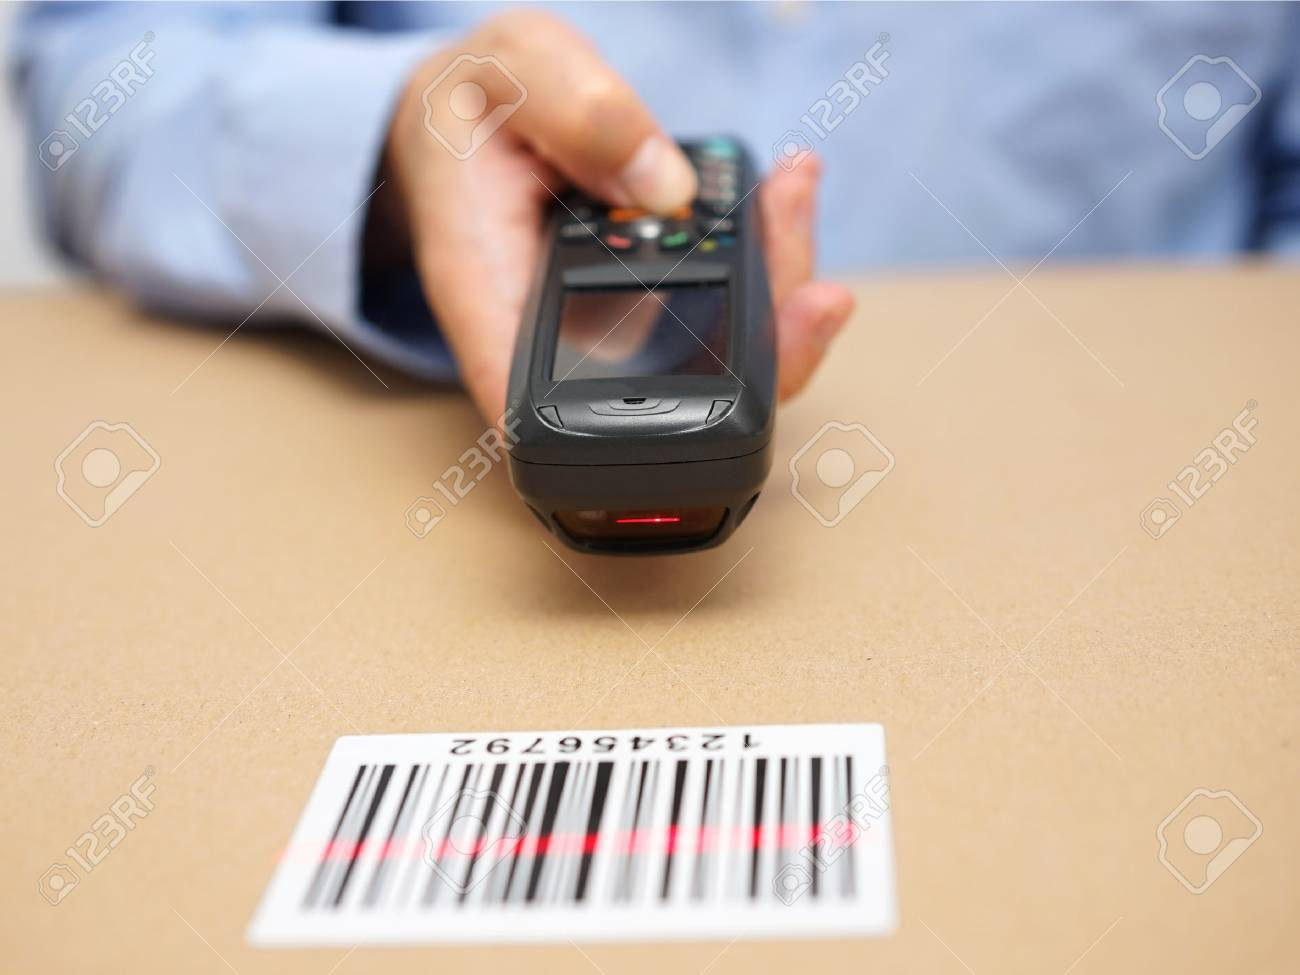 warehouse technician inspects stocks in storage with bar code reader Stock Photo - 47708023